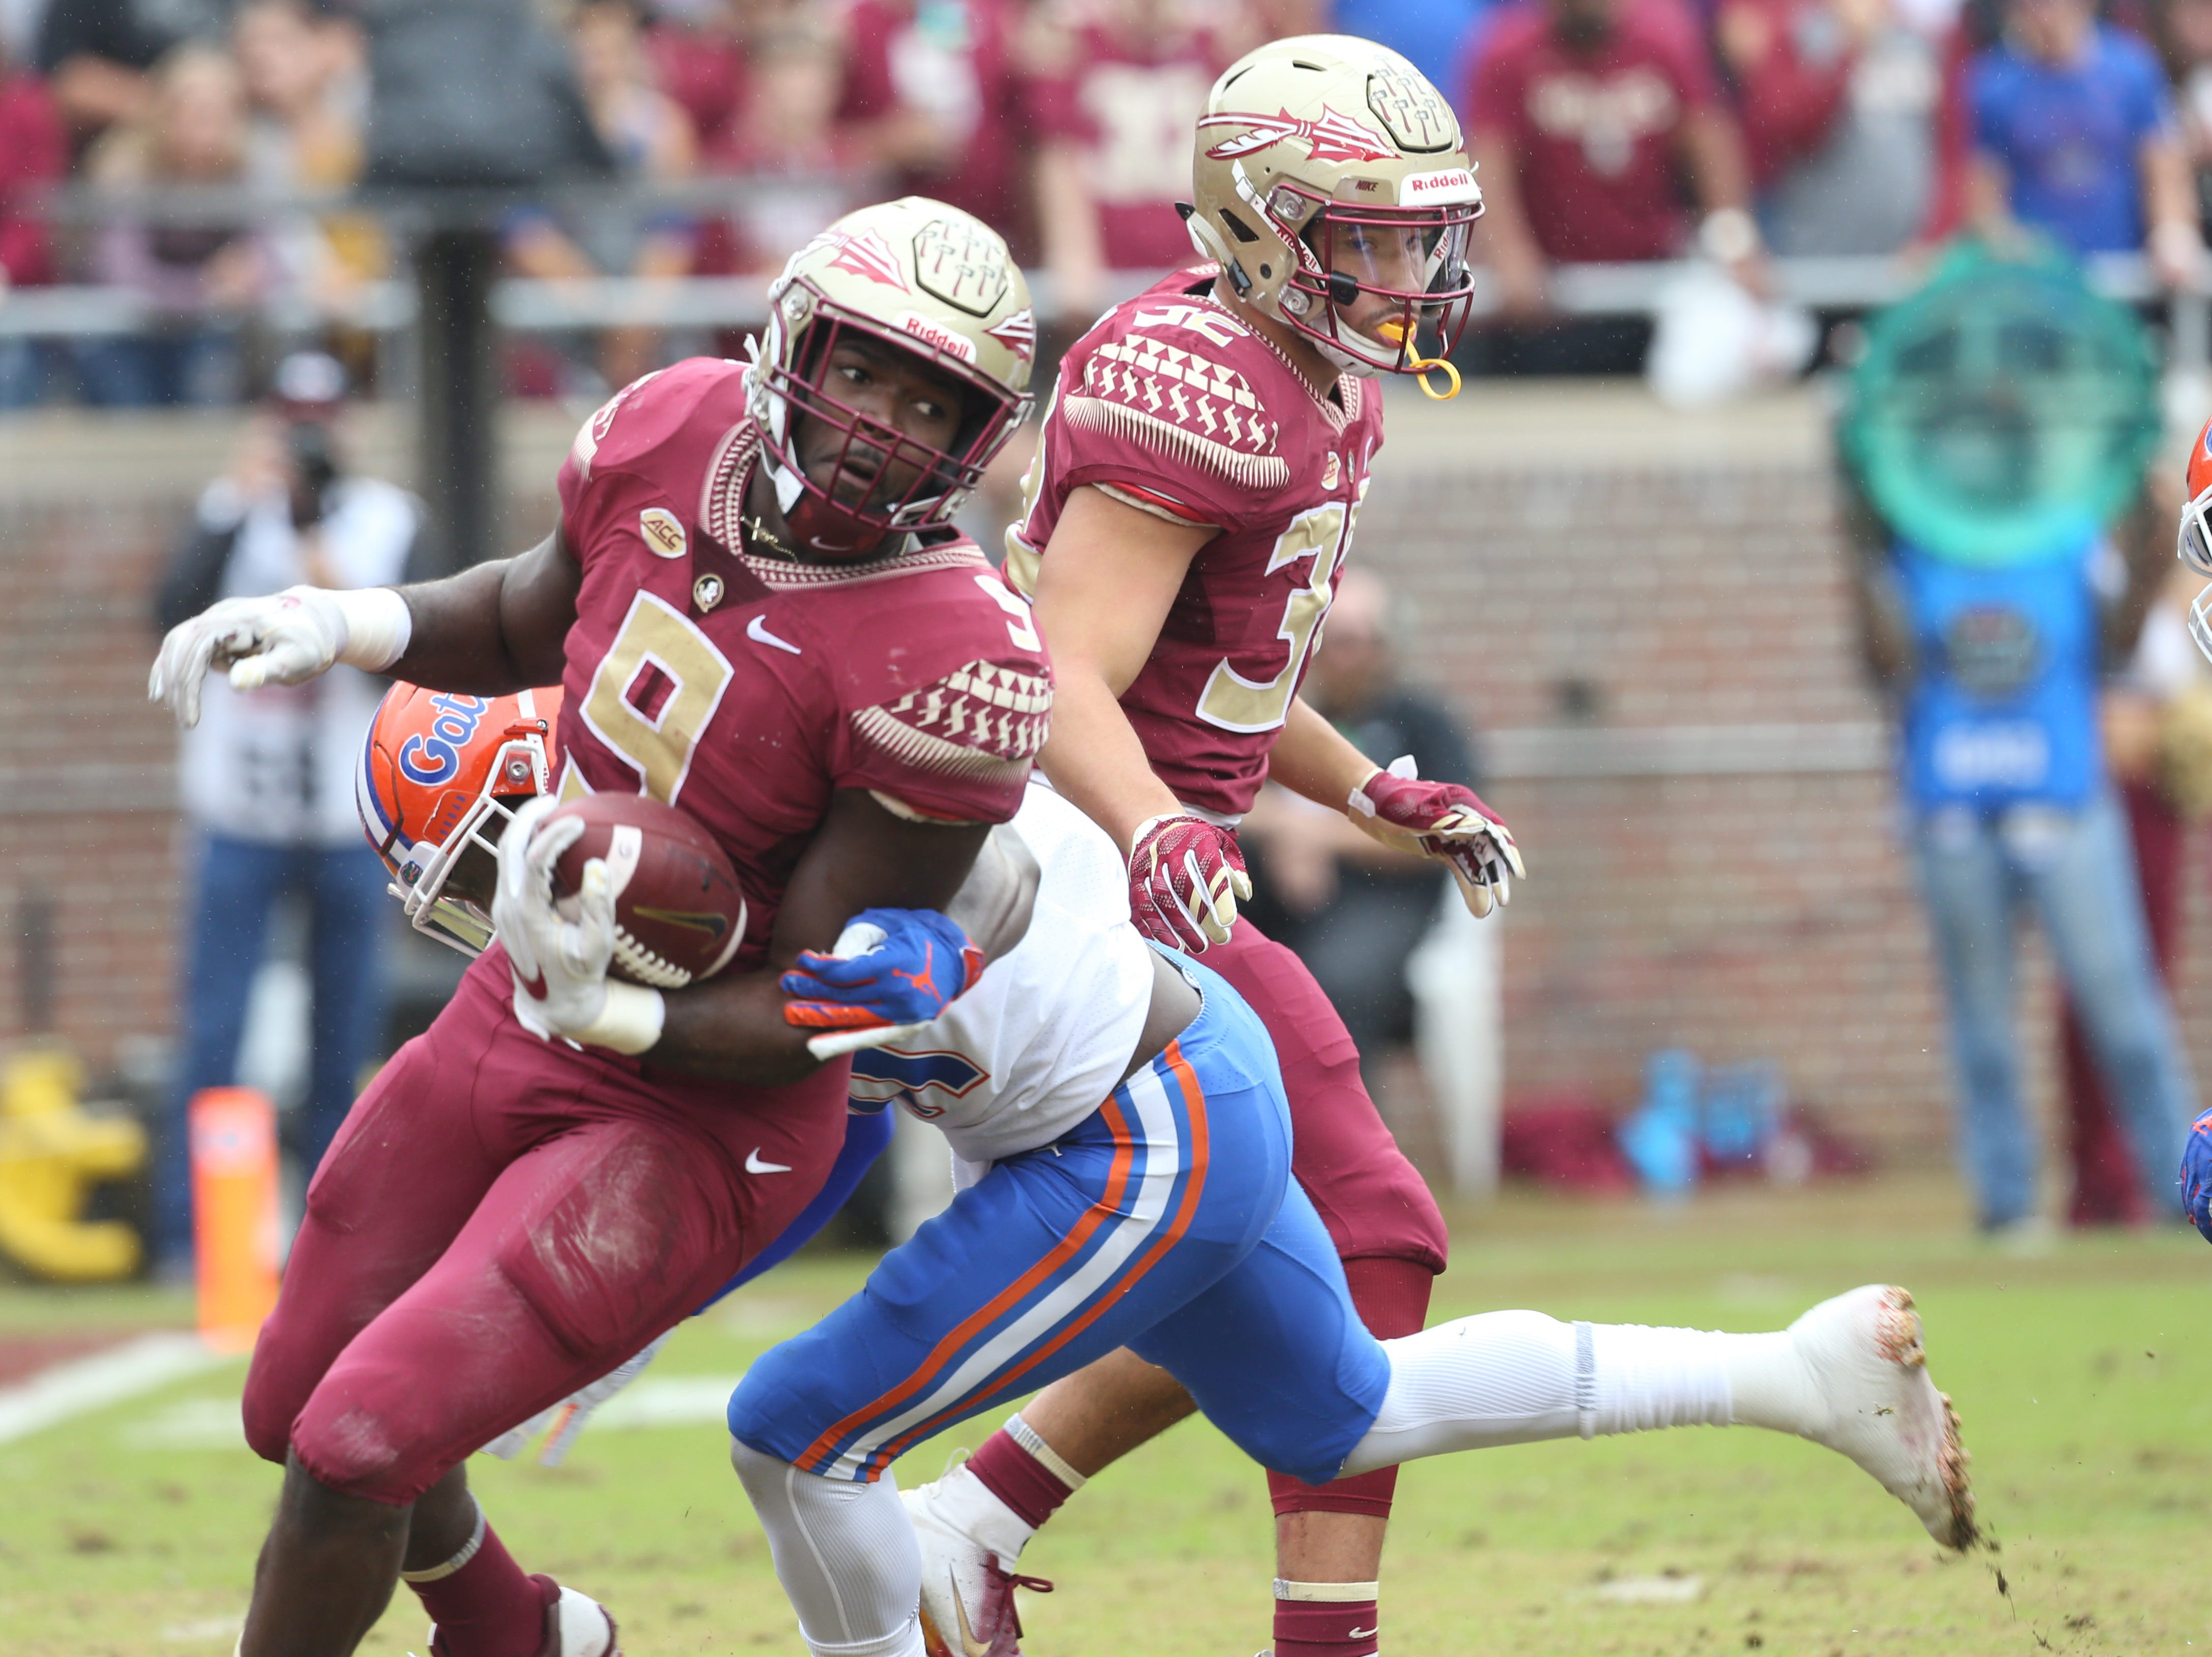 Florida State Seminoles running back Jacques Patrick (9) fights off a tackle as the Florida State Seminoles take on their rival the Florida Gators in college football at Doak S. Campbell Stadium, Saturday, Nov. 24, 2018.